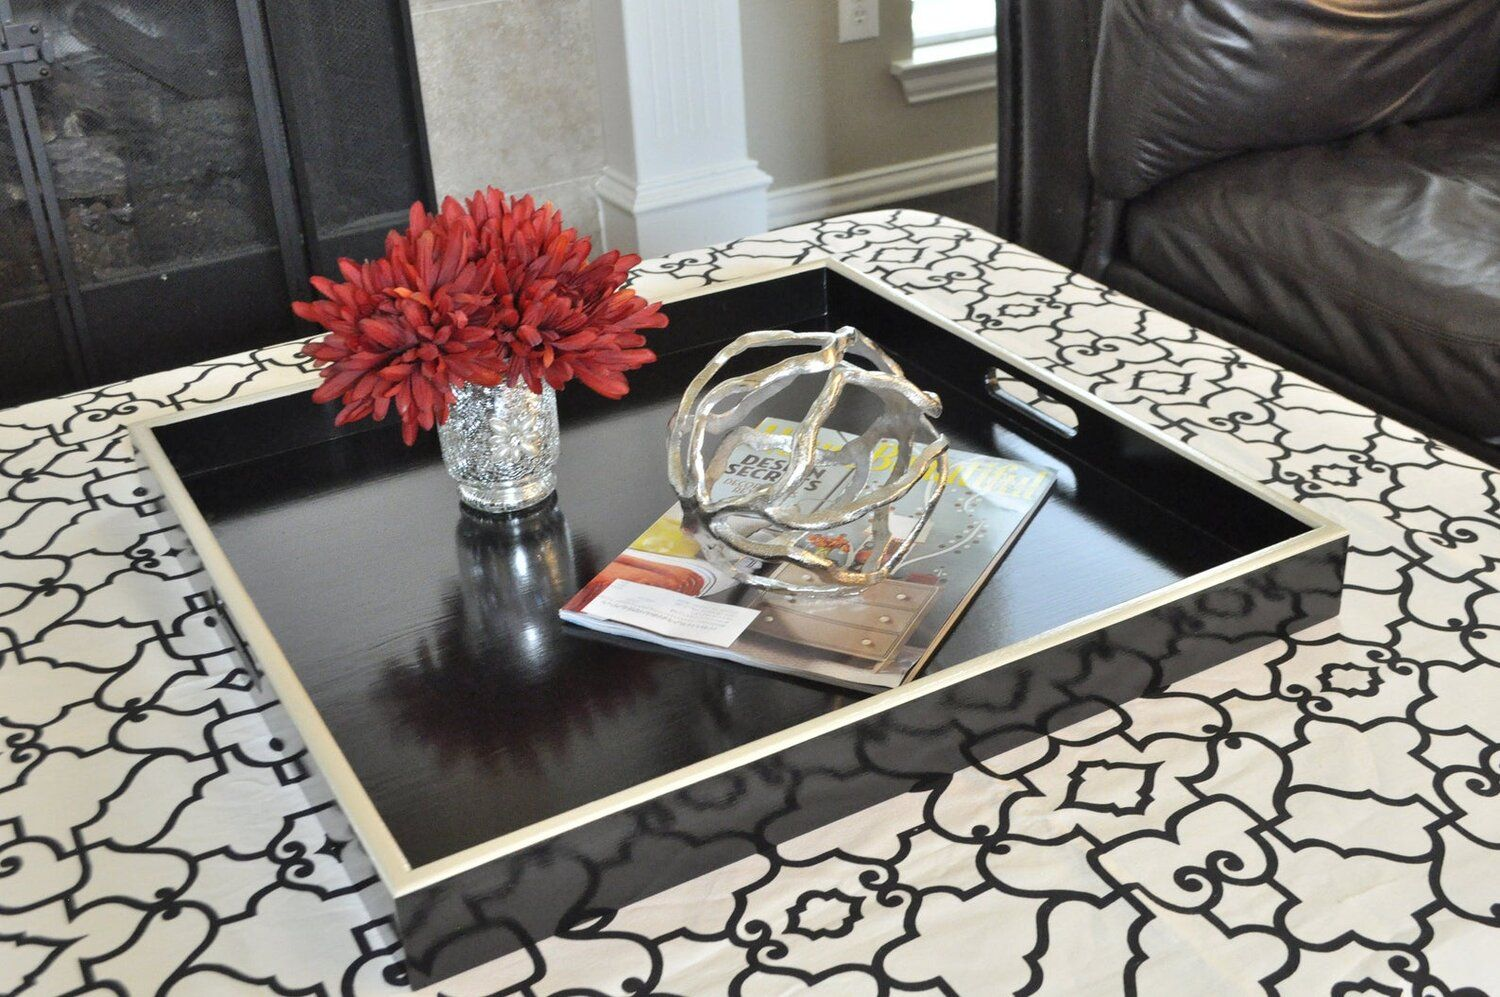 How To Style Round Square Coffee Tables Trim Design Co In 2021 Coffee Table Coffee Table Square Large Ottoman Tray [ 997 x 1500 Pixel ]